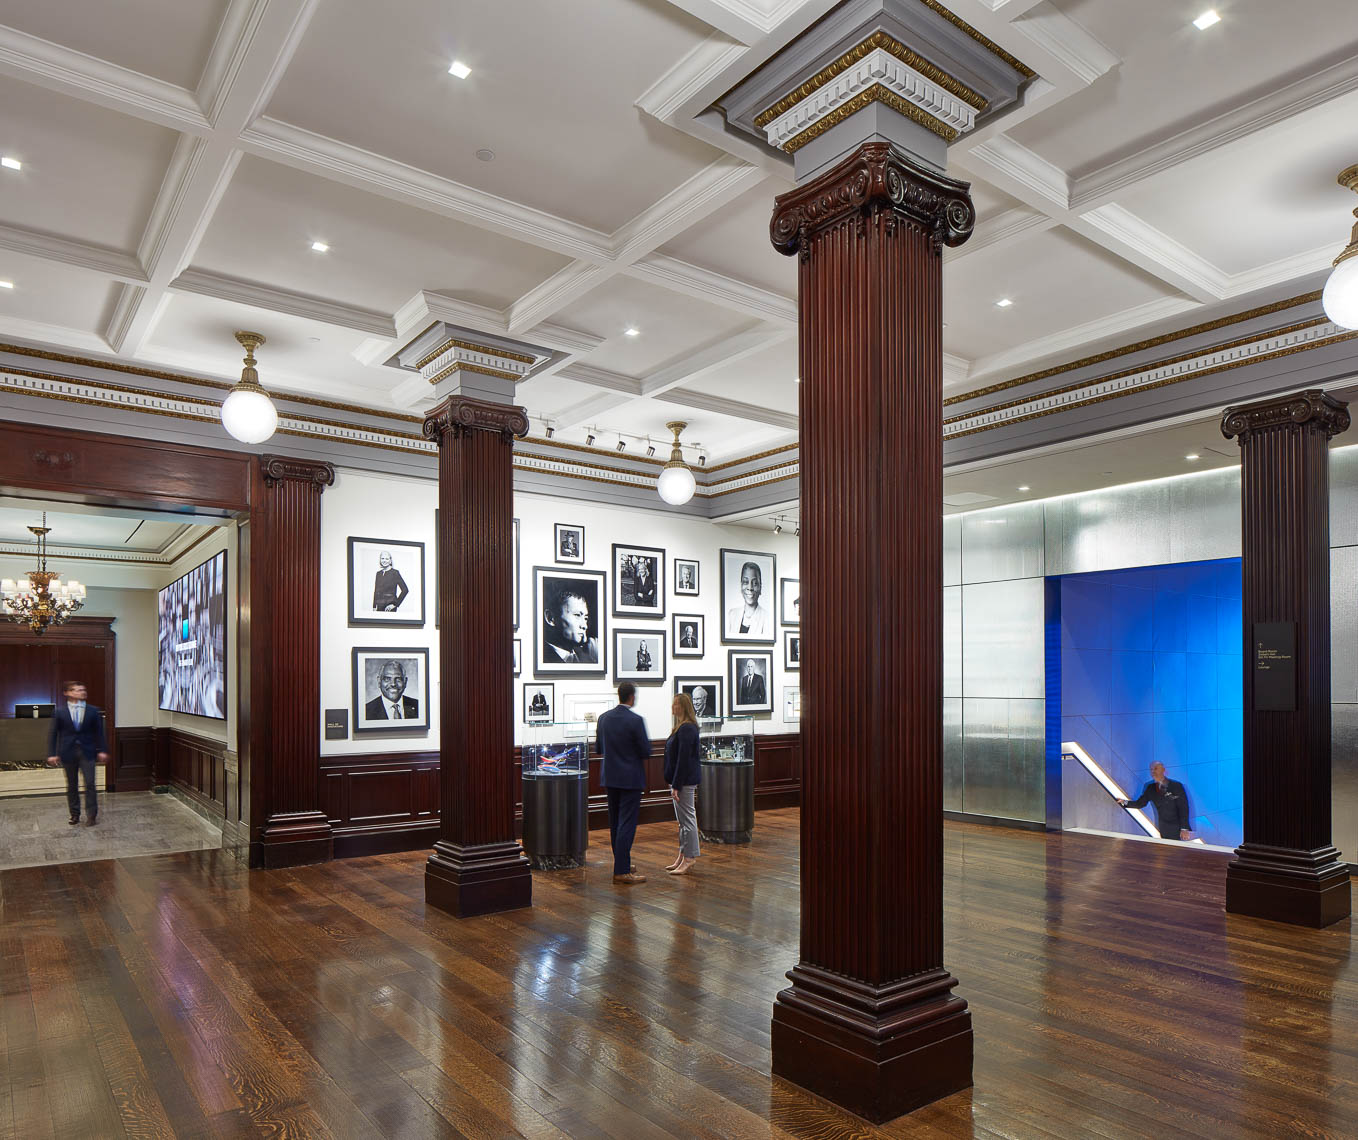 Interiors of common area with traditional wood carved columns and photographs of business leaders on the wall